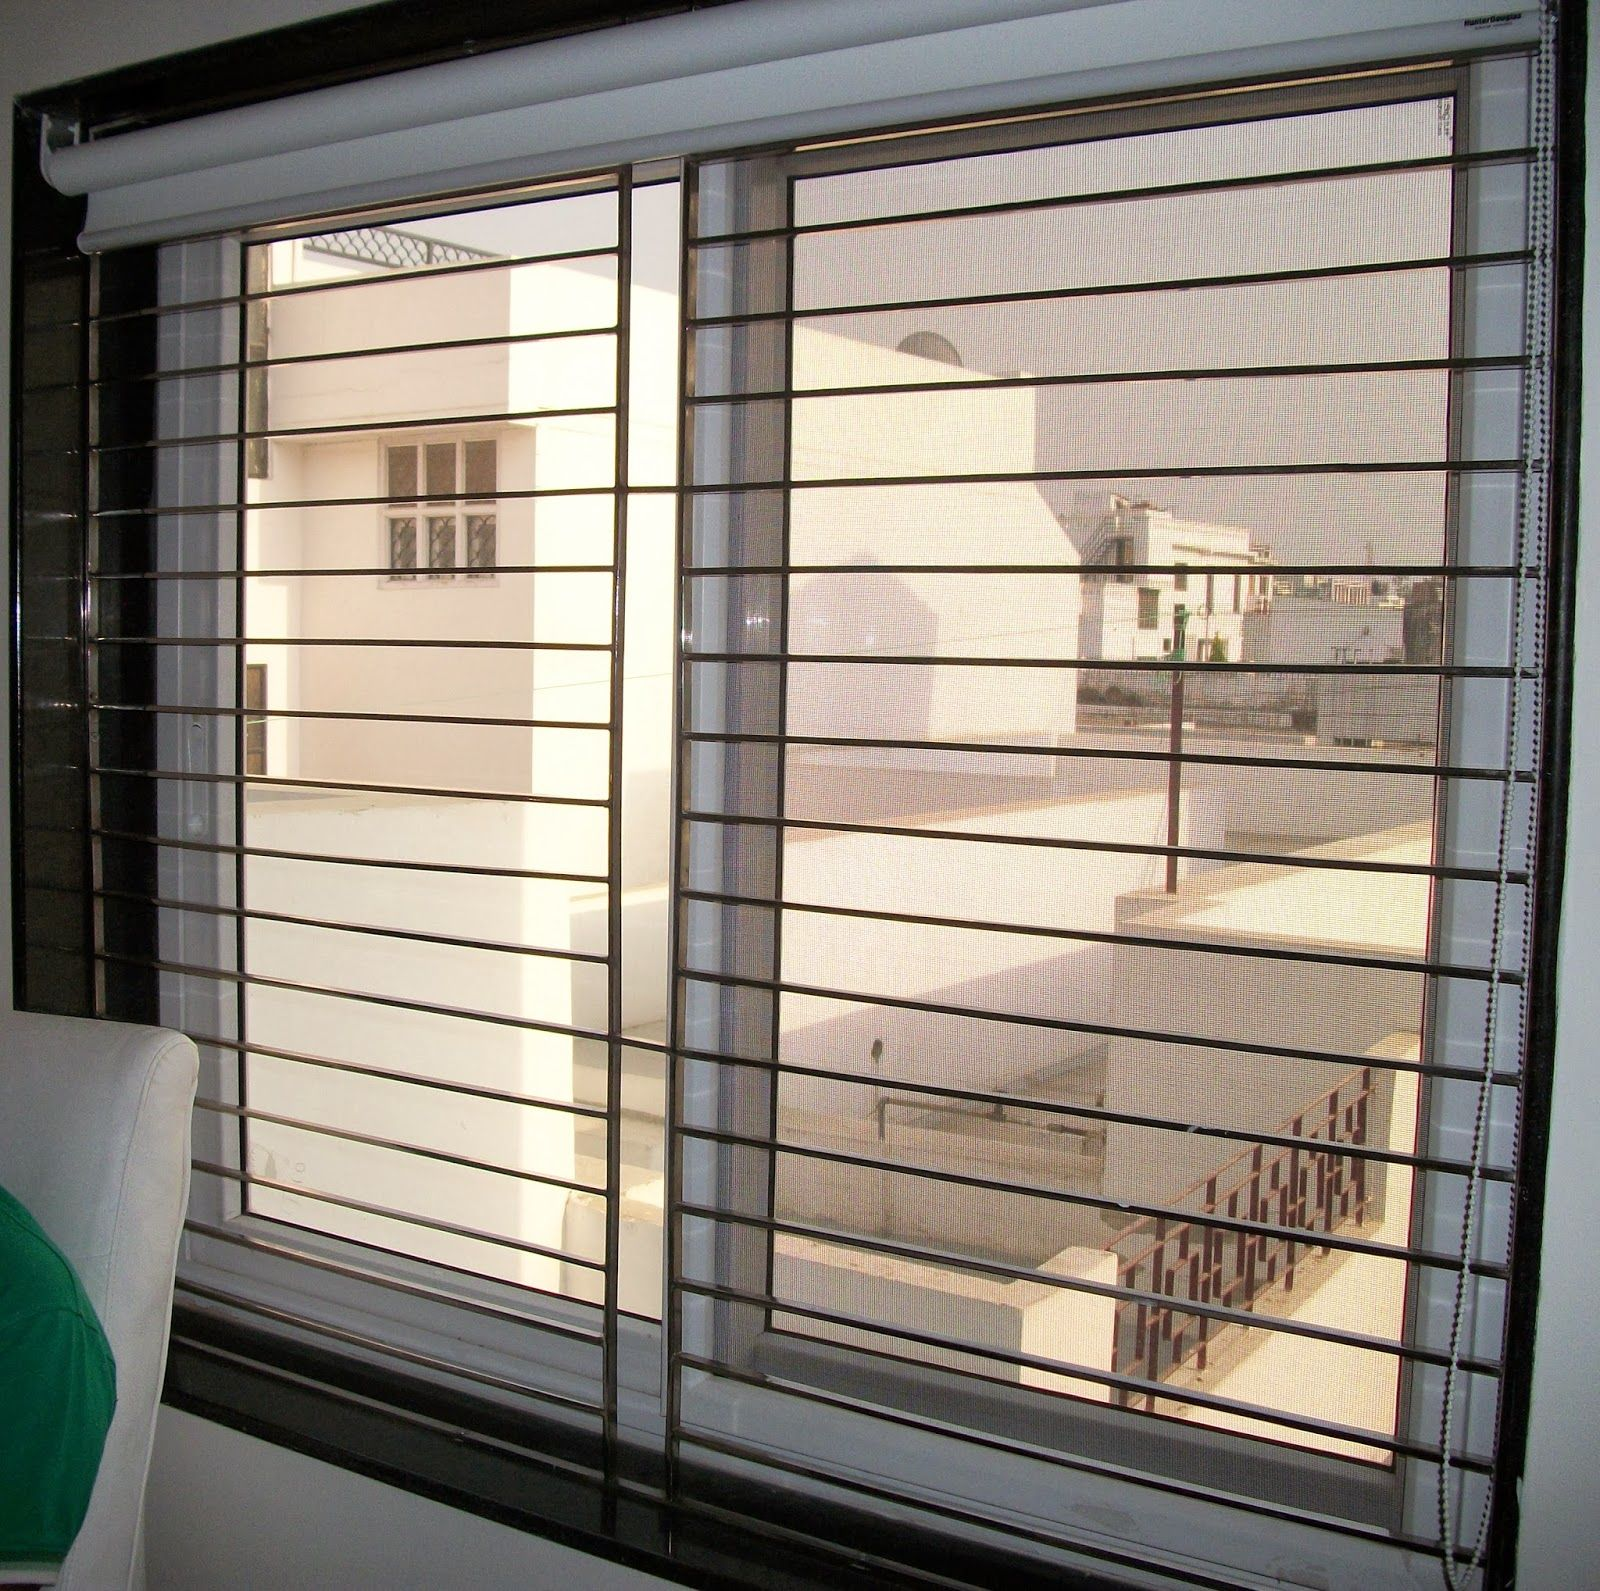 Awning Windows With Grilles - Google Search